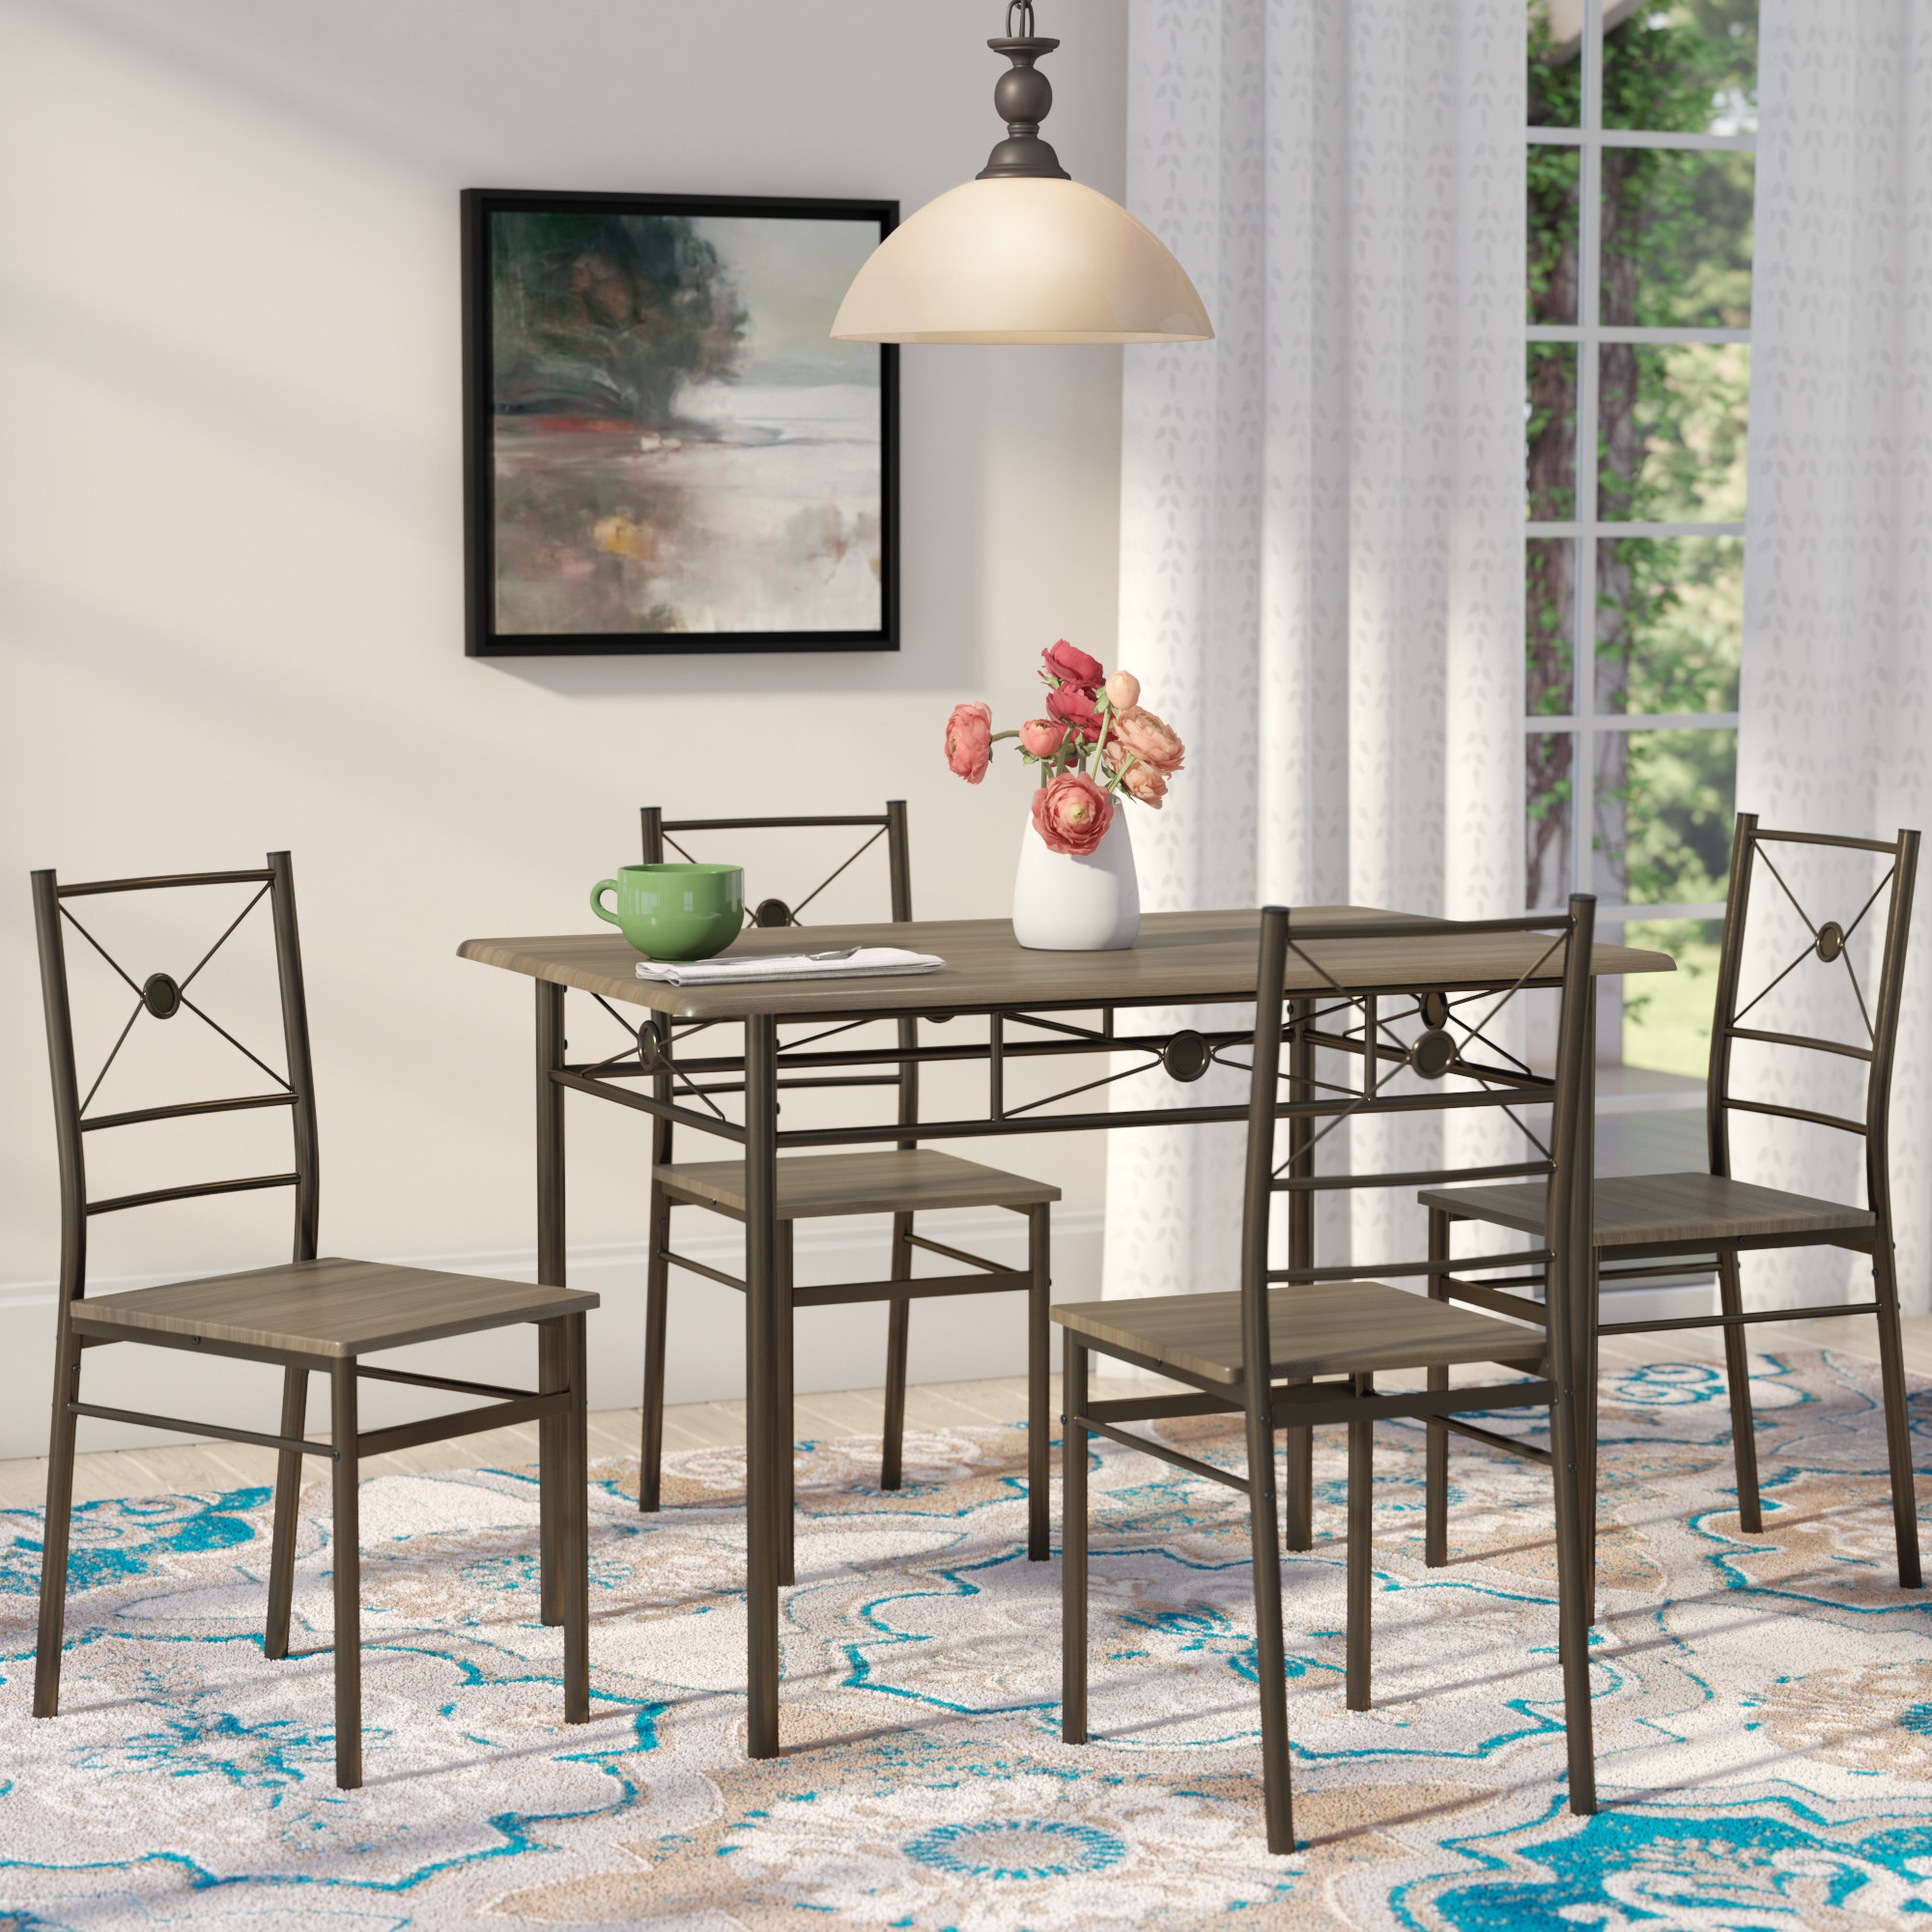 Wayfair With Newest Middleport 5 Piece Dining Sets (View 21 of 25)